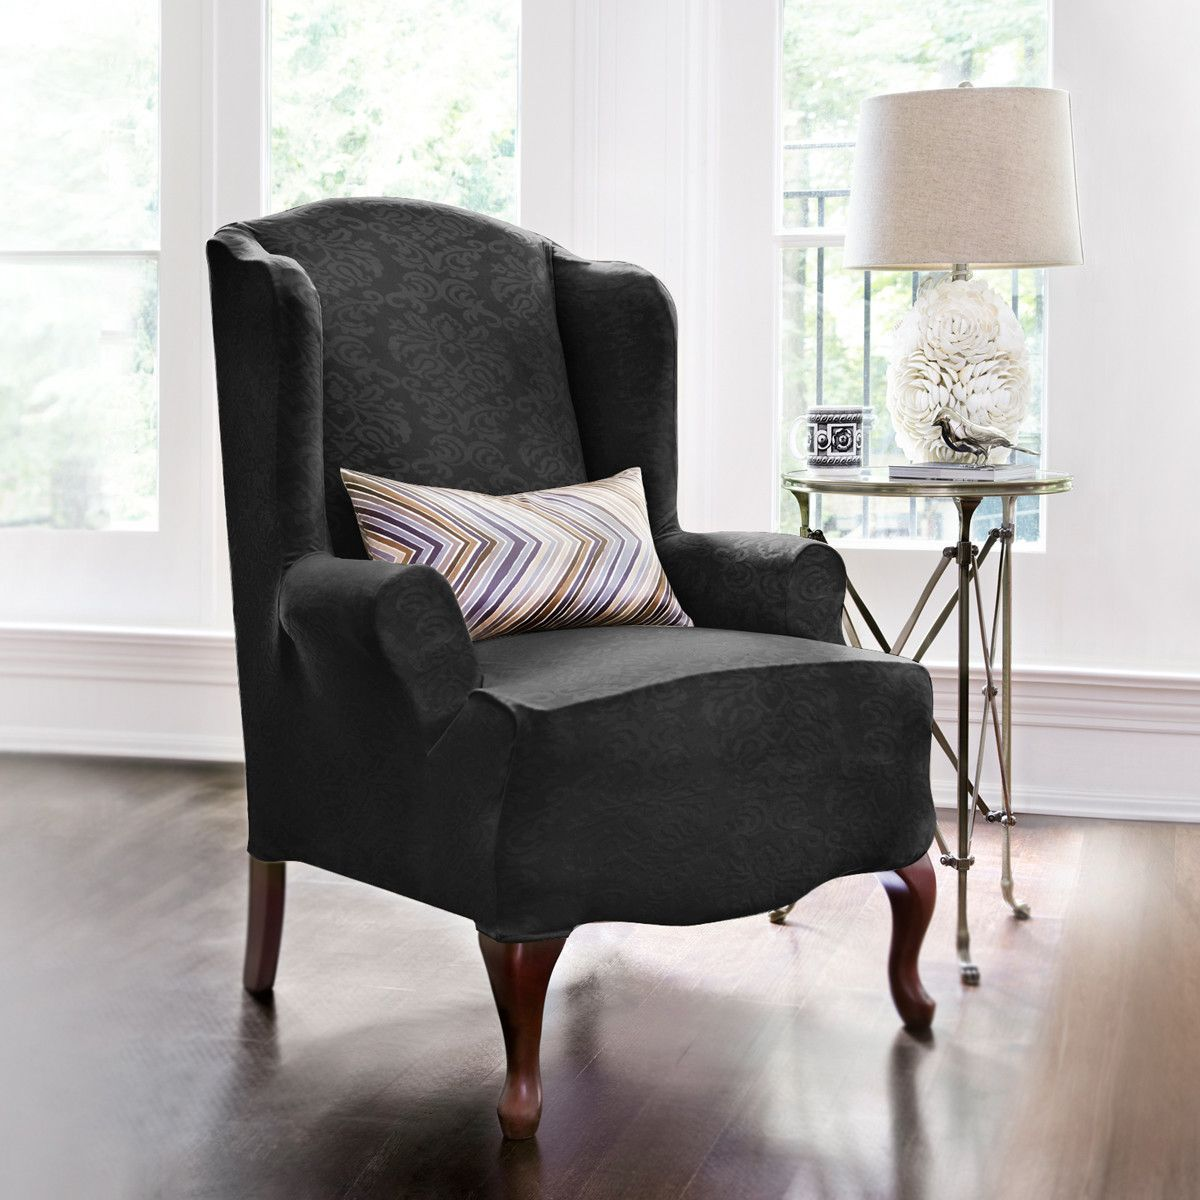 Lovely Astonishing Wing Chair Recliner Slipcover For Elegant Home Interior Decor:  Cool Black Dahlia Damask Wing Chair Recliner Slipcovers By Wayfair In Brown  Wood ...